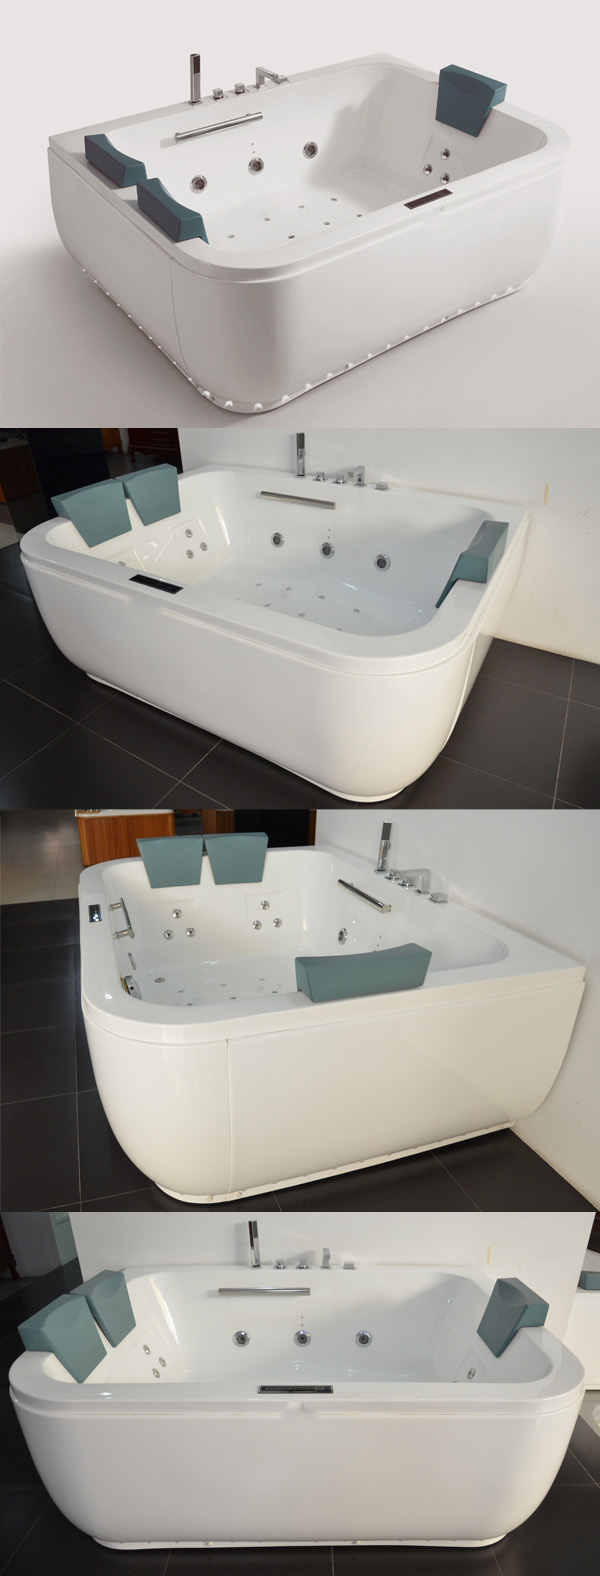 Hs-b1831t With Beautiful Light Rectangular Huge Bathtub Sale In ...